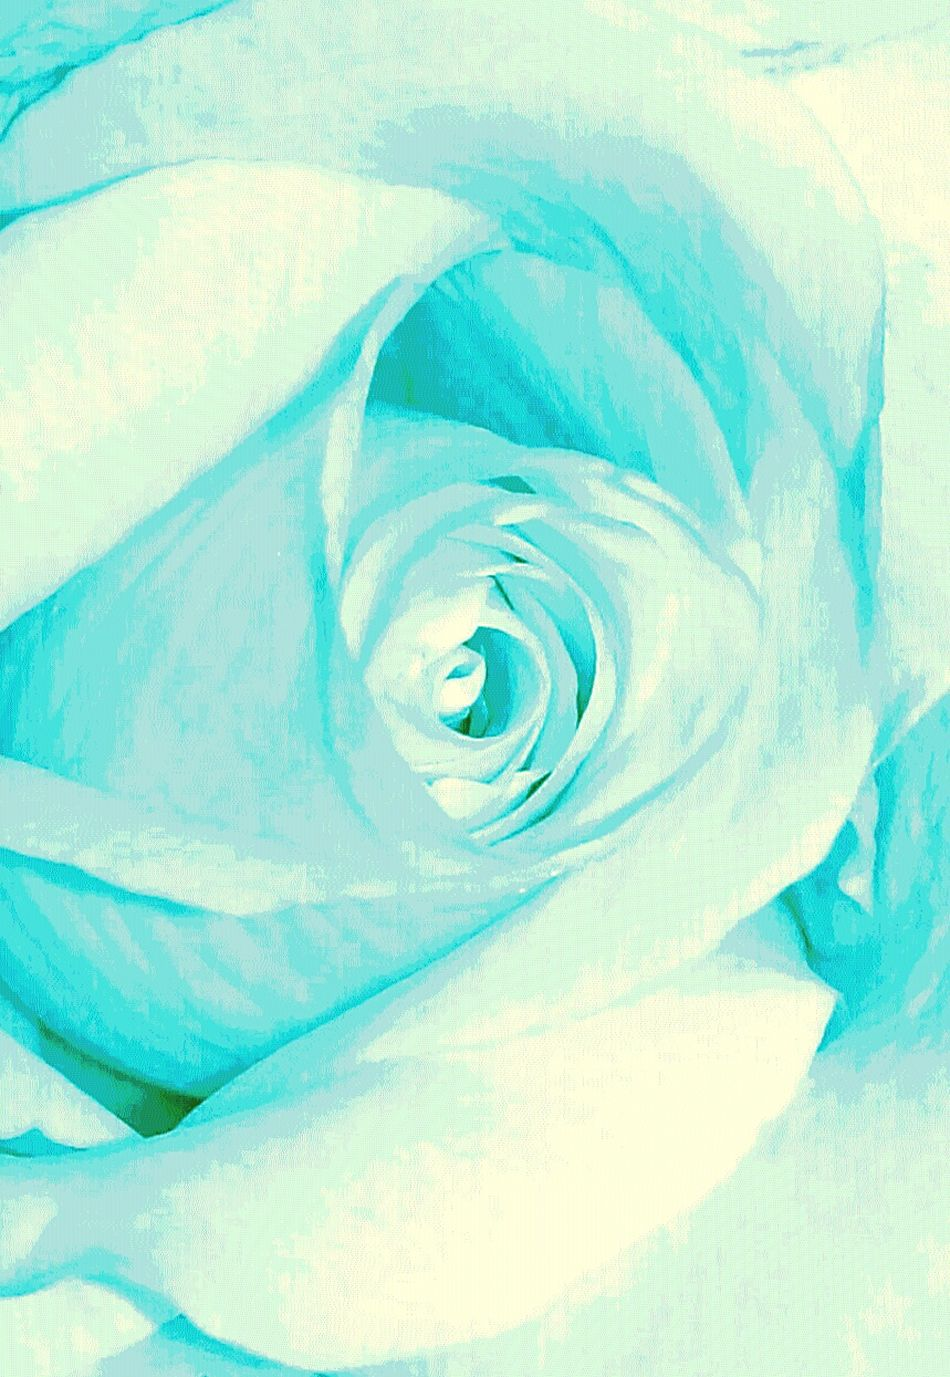 Baby blue.. Pastel Power Live, Love, Laugh EyeEm Worthy Eyeem Market Getty Images Live Life With No Regrets Me And You Happiness Is Key EyeEm Love Be Happy Be Kind Book Art Eye4photography  EyeEm Gallery Shades Of Nature Shades Of Blue Soft Pastel  Roses Blue Rose Single Rose Single Flower EyeEm Shades Of White White Album EyeEm The Best Shots EyeEm Nature Lover